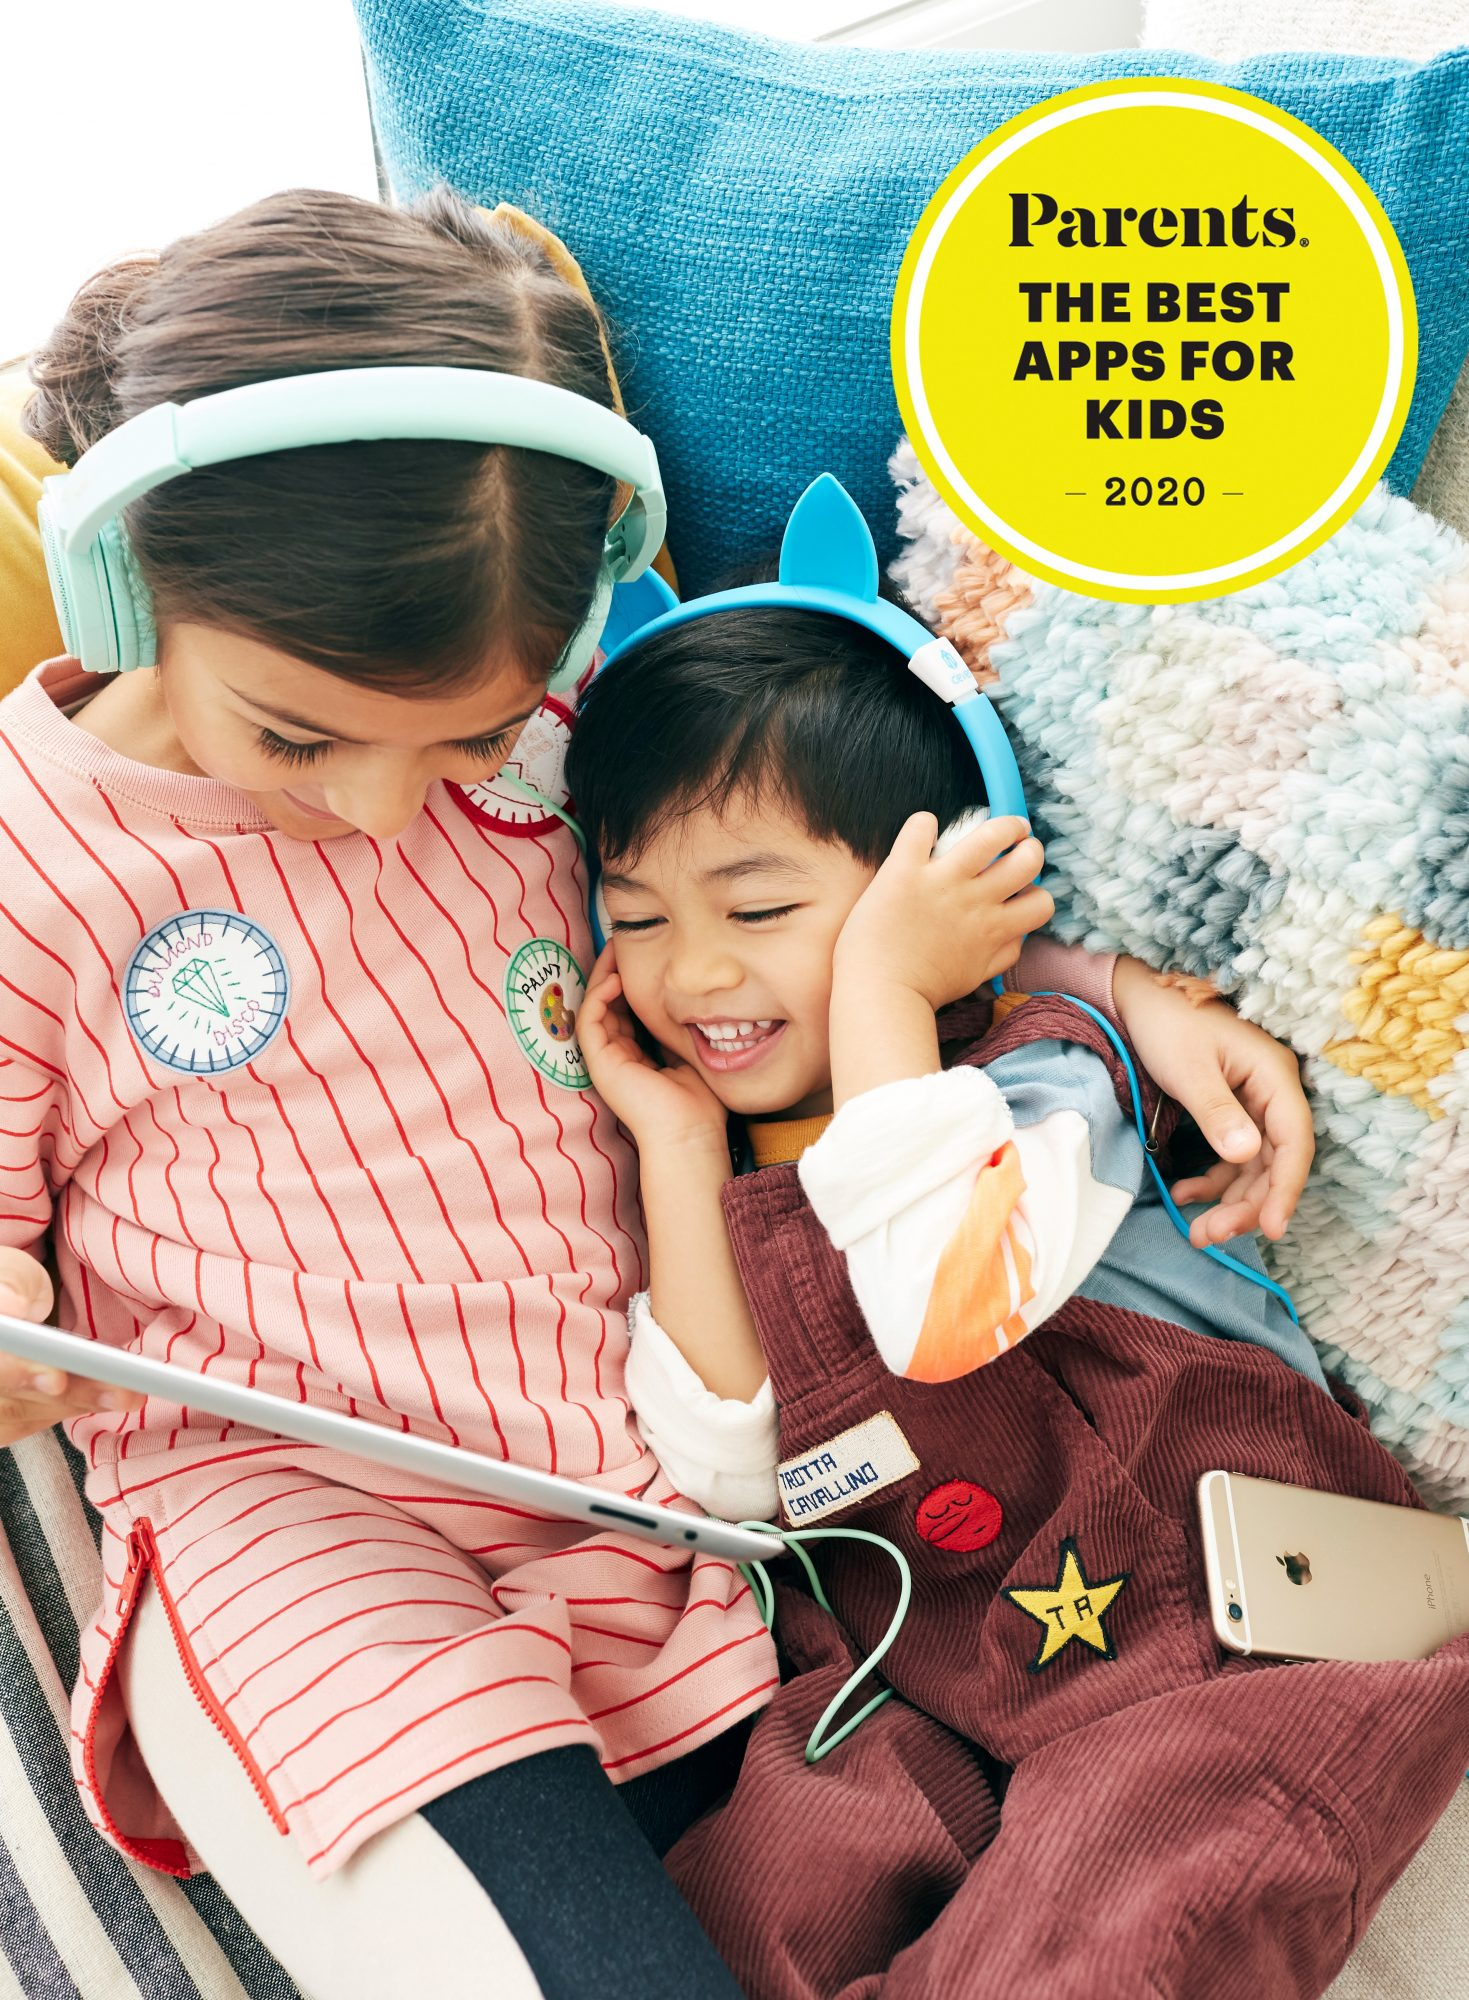 two kids wearing headphones looking at tablet